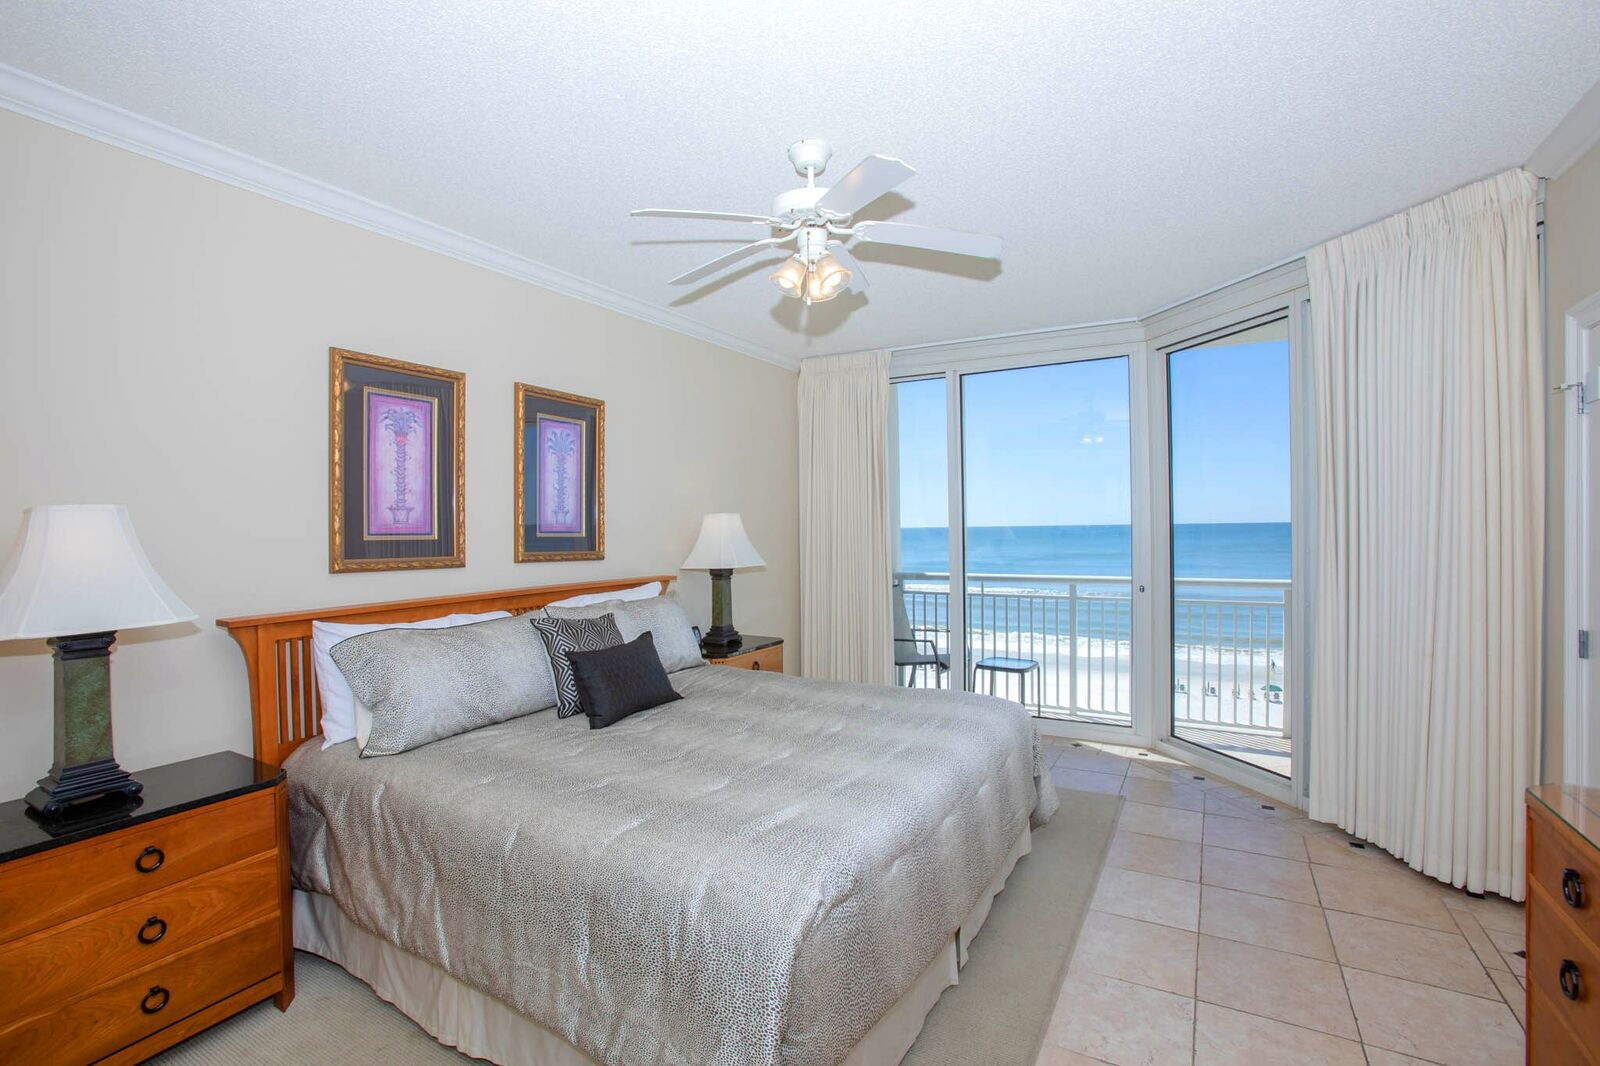 The Pearl of Navarre #504 Condo rental in The Pearl of Navarre Beach in Navarre Florida - #12